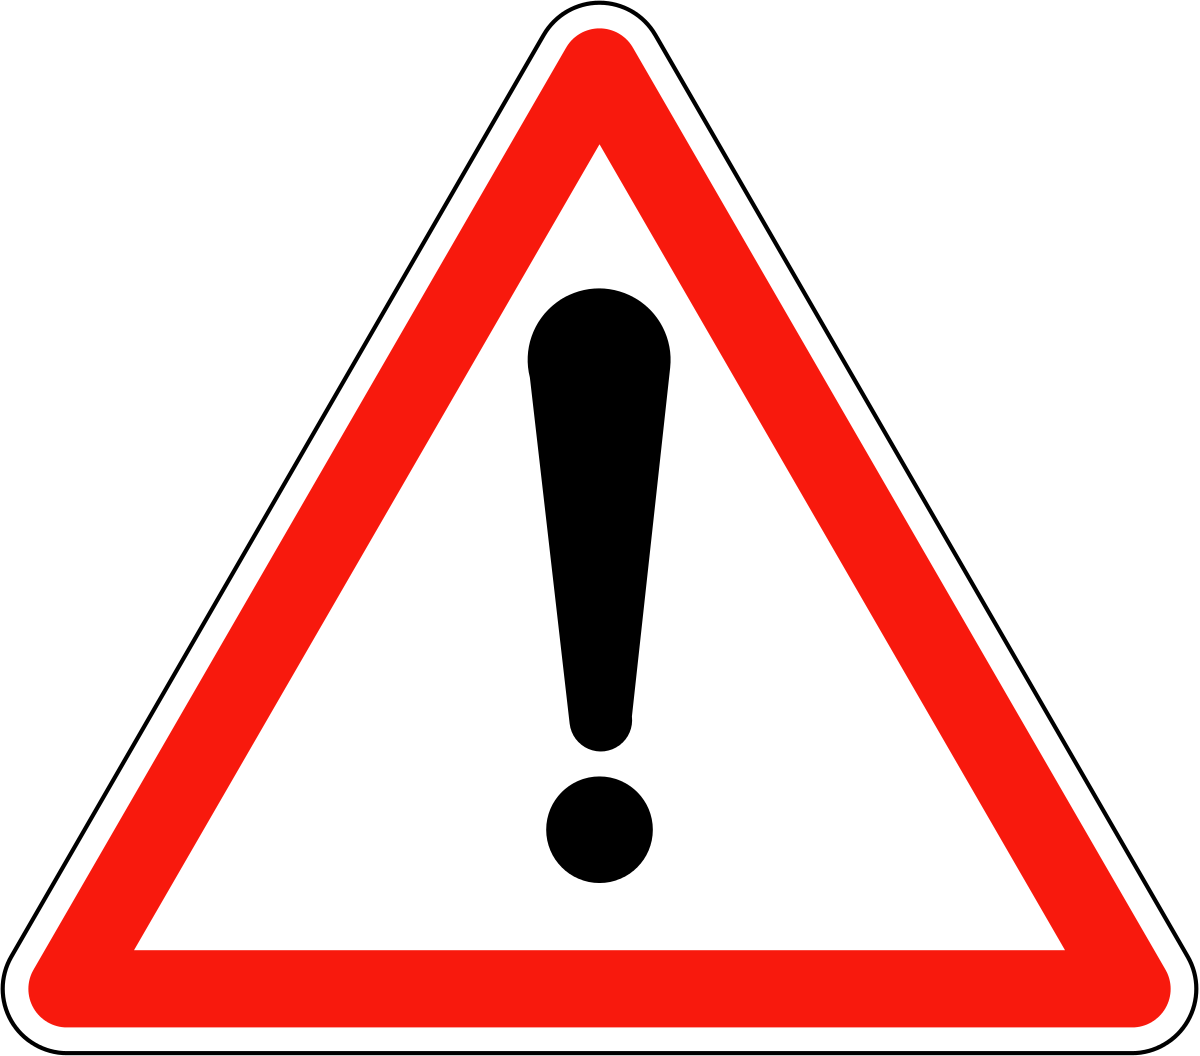 France road sign A14 svg